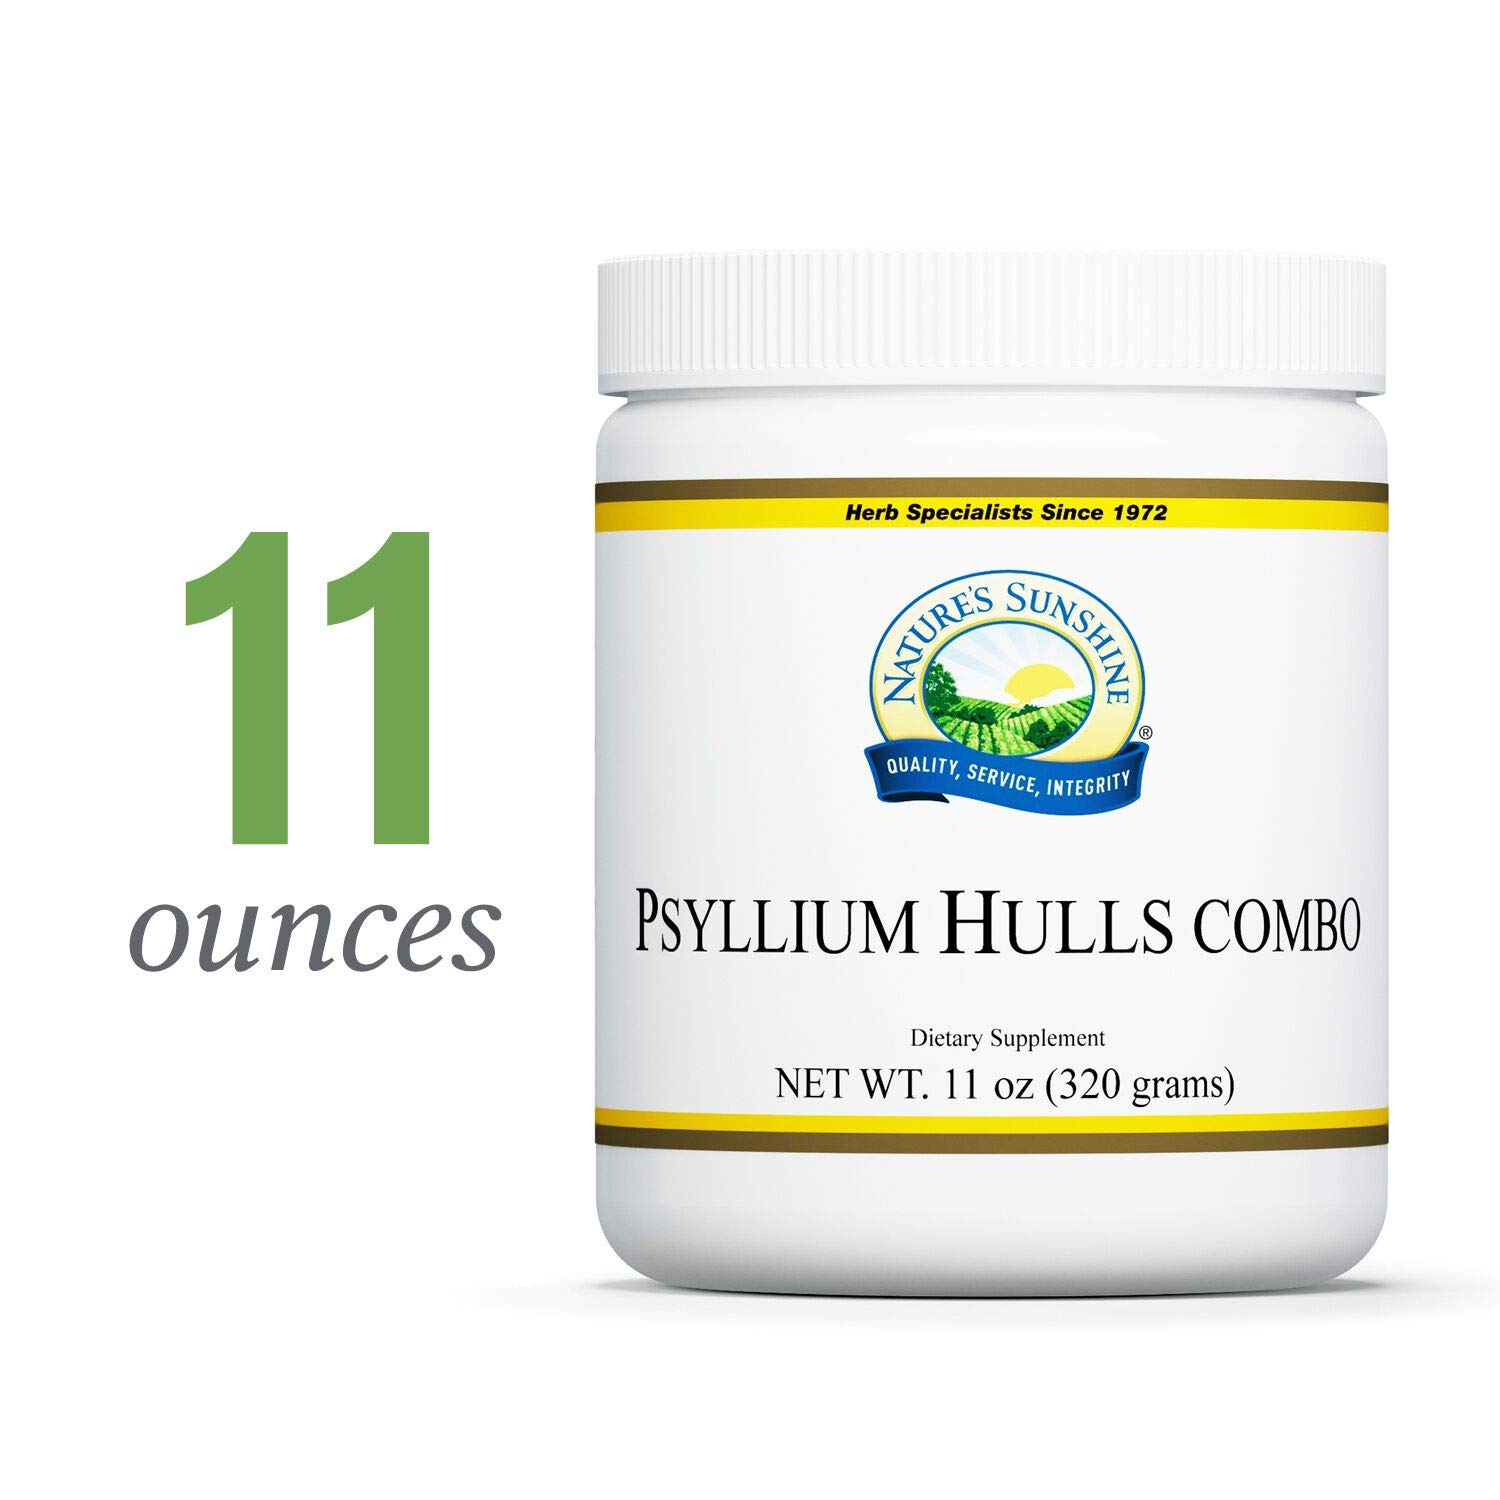 Nature's Sunshine Psyllium Hulls Combination, 11 oz. | Organic Intestinal System Support is High in Soluble Fiber Which Facilitates The Process of Waste Elimination